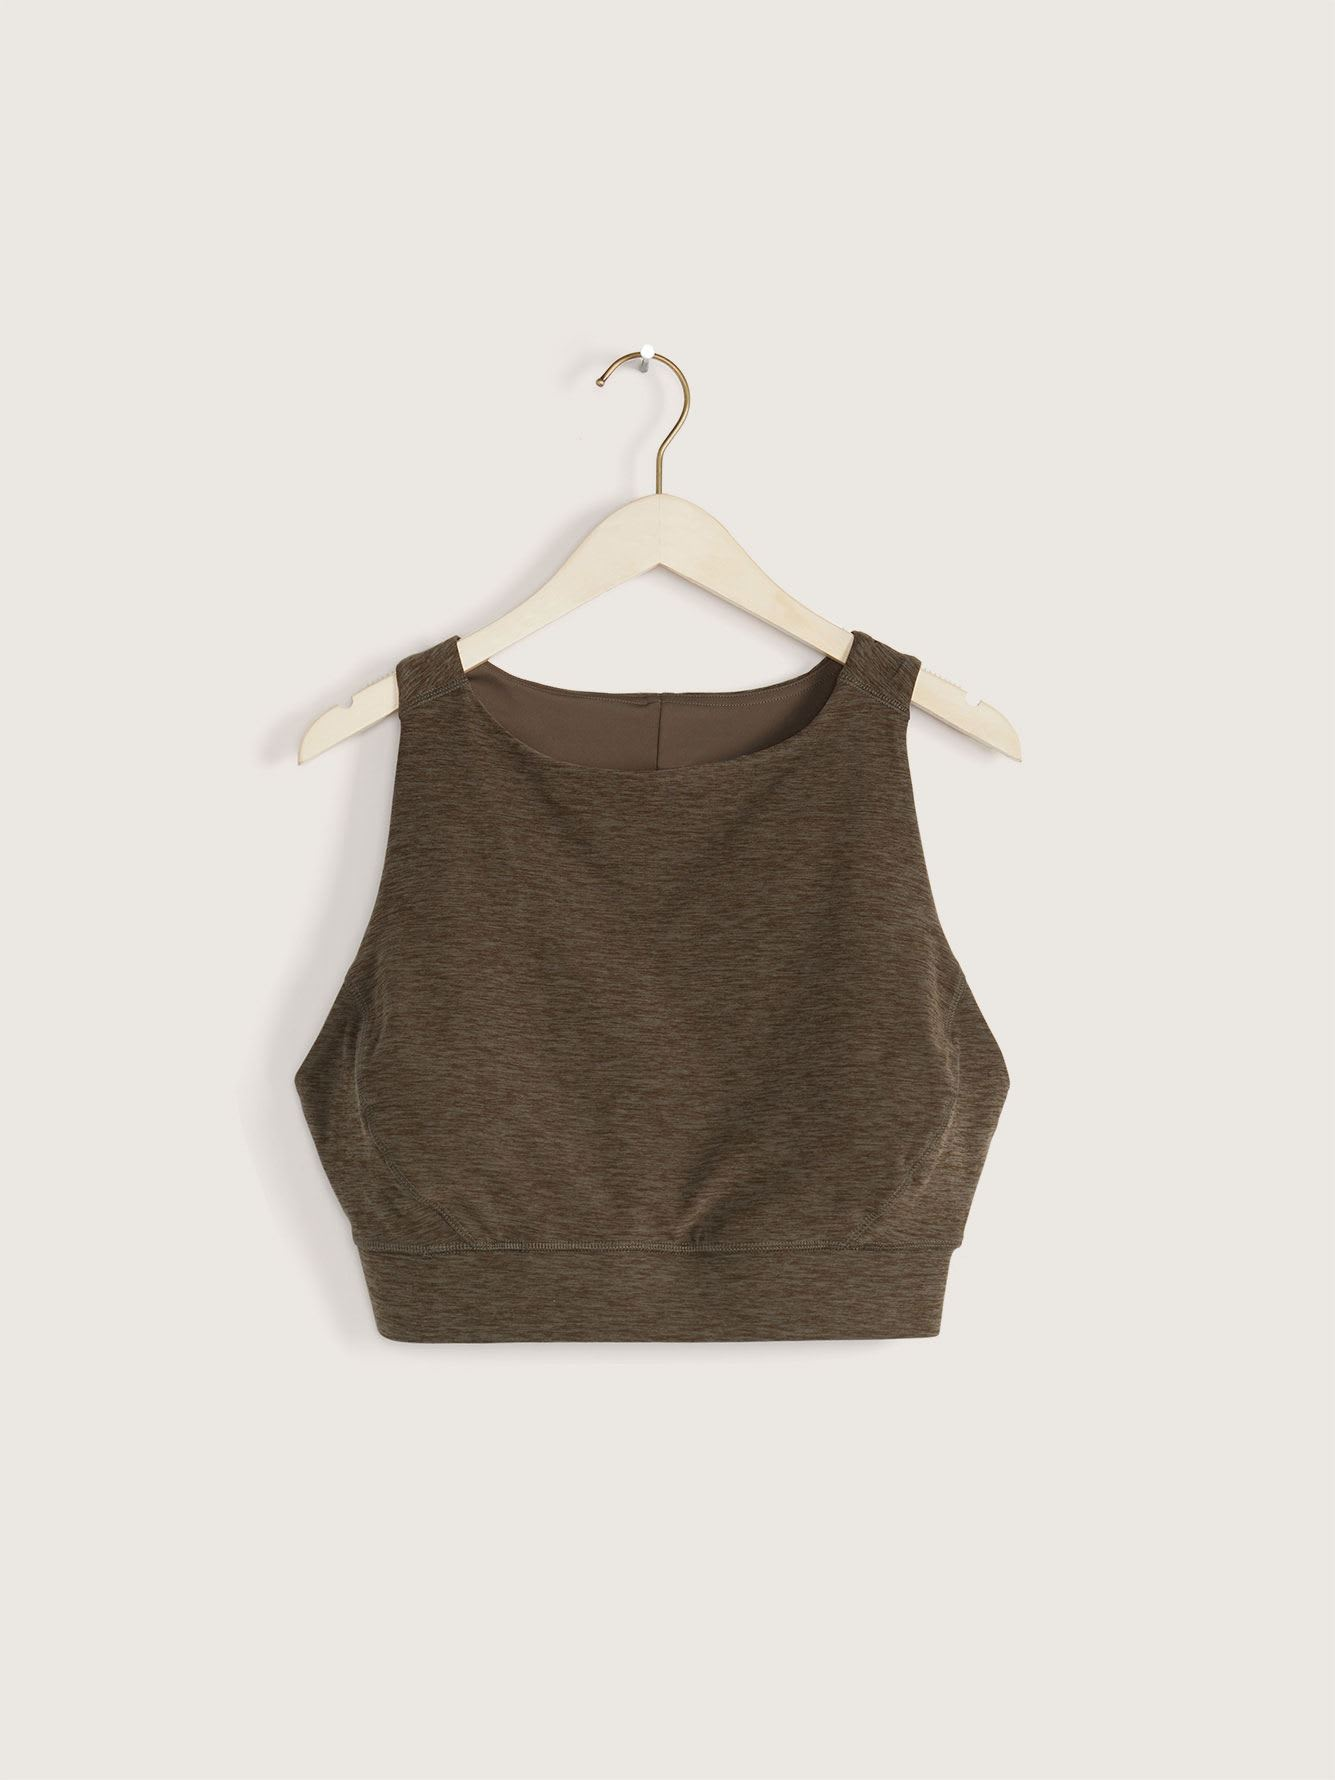 Namaste Space-Dye Crop Top - ActiveZone